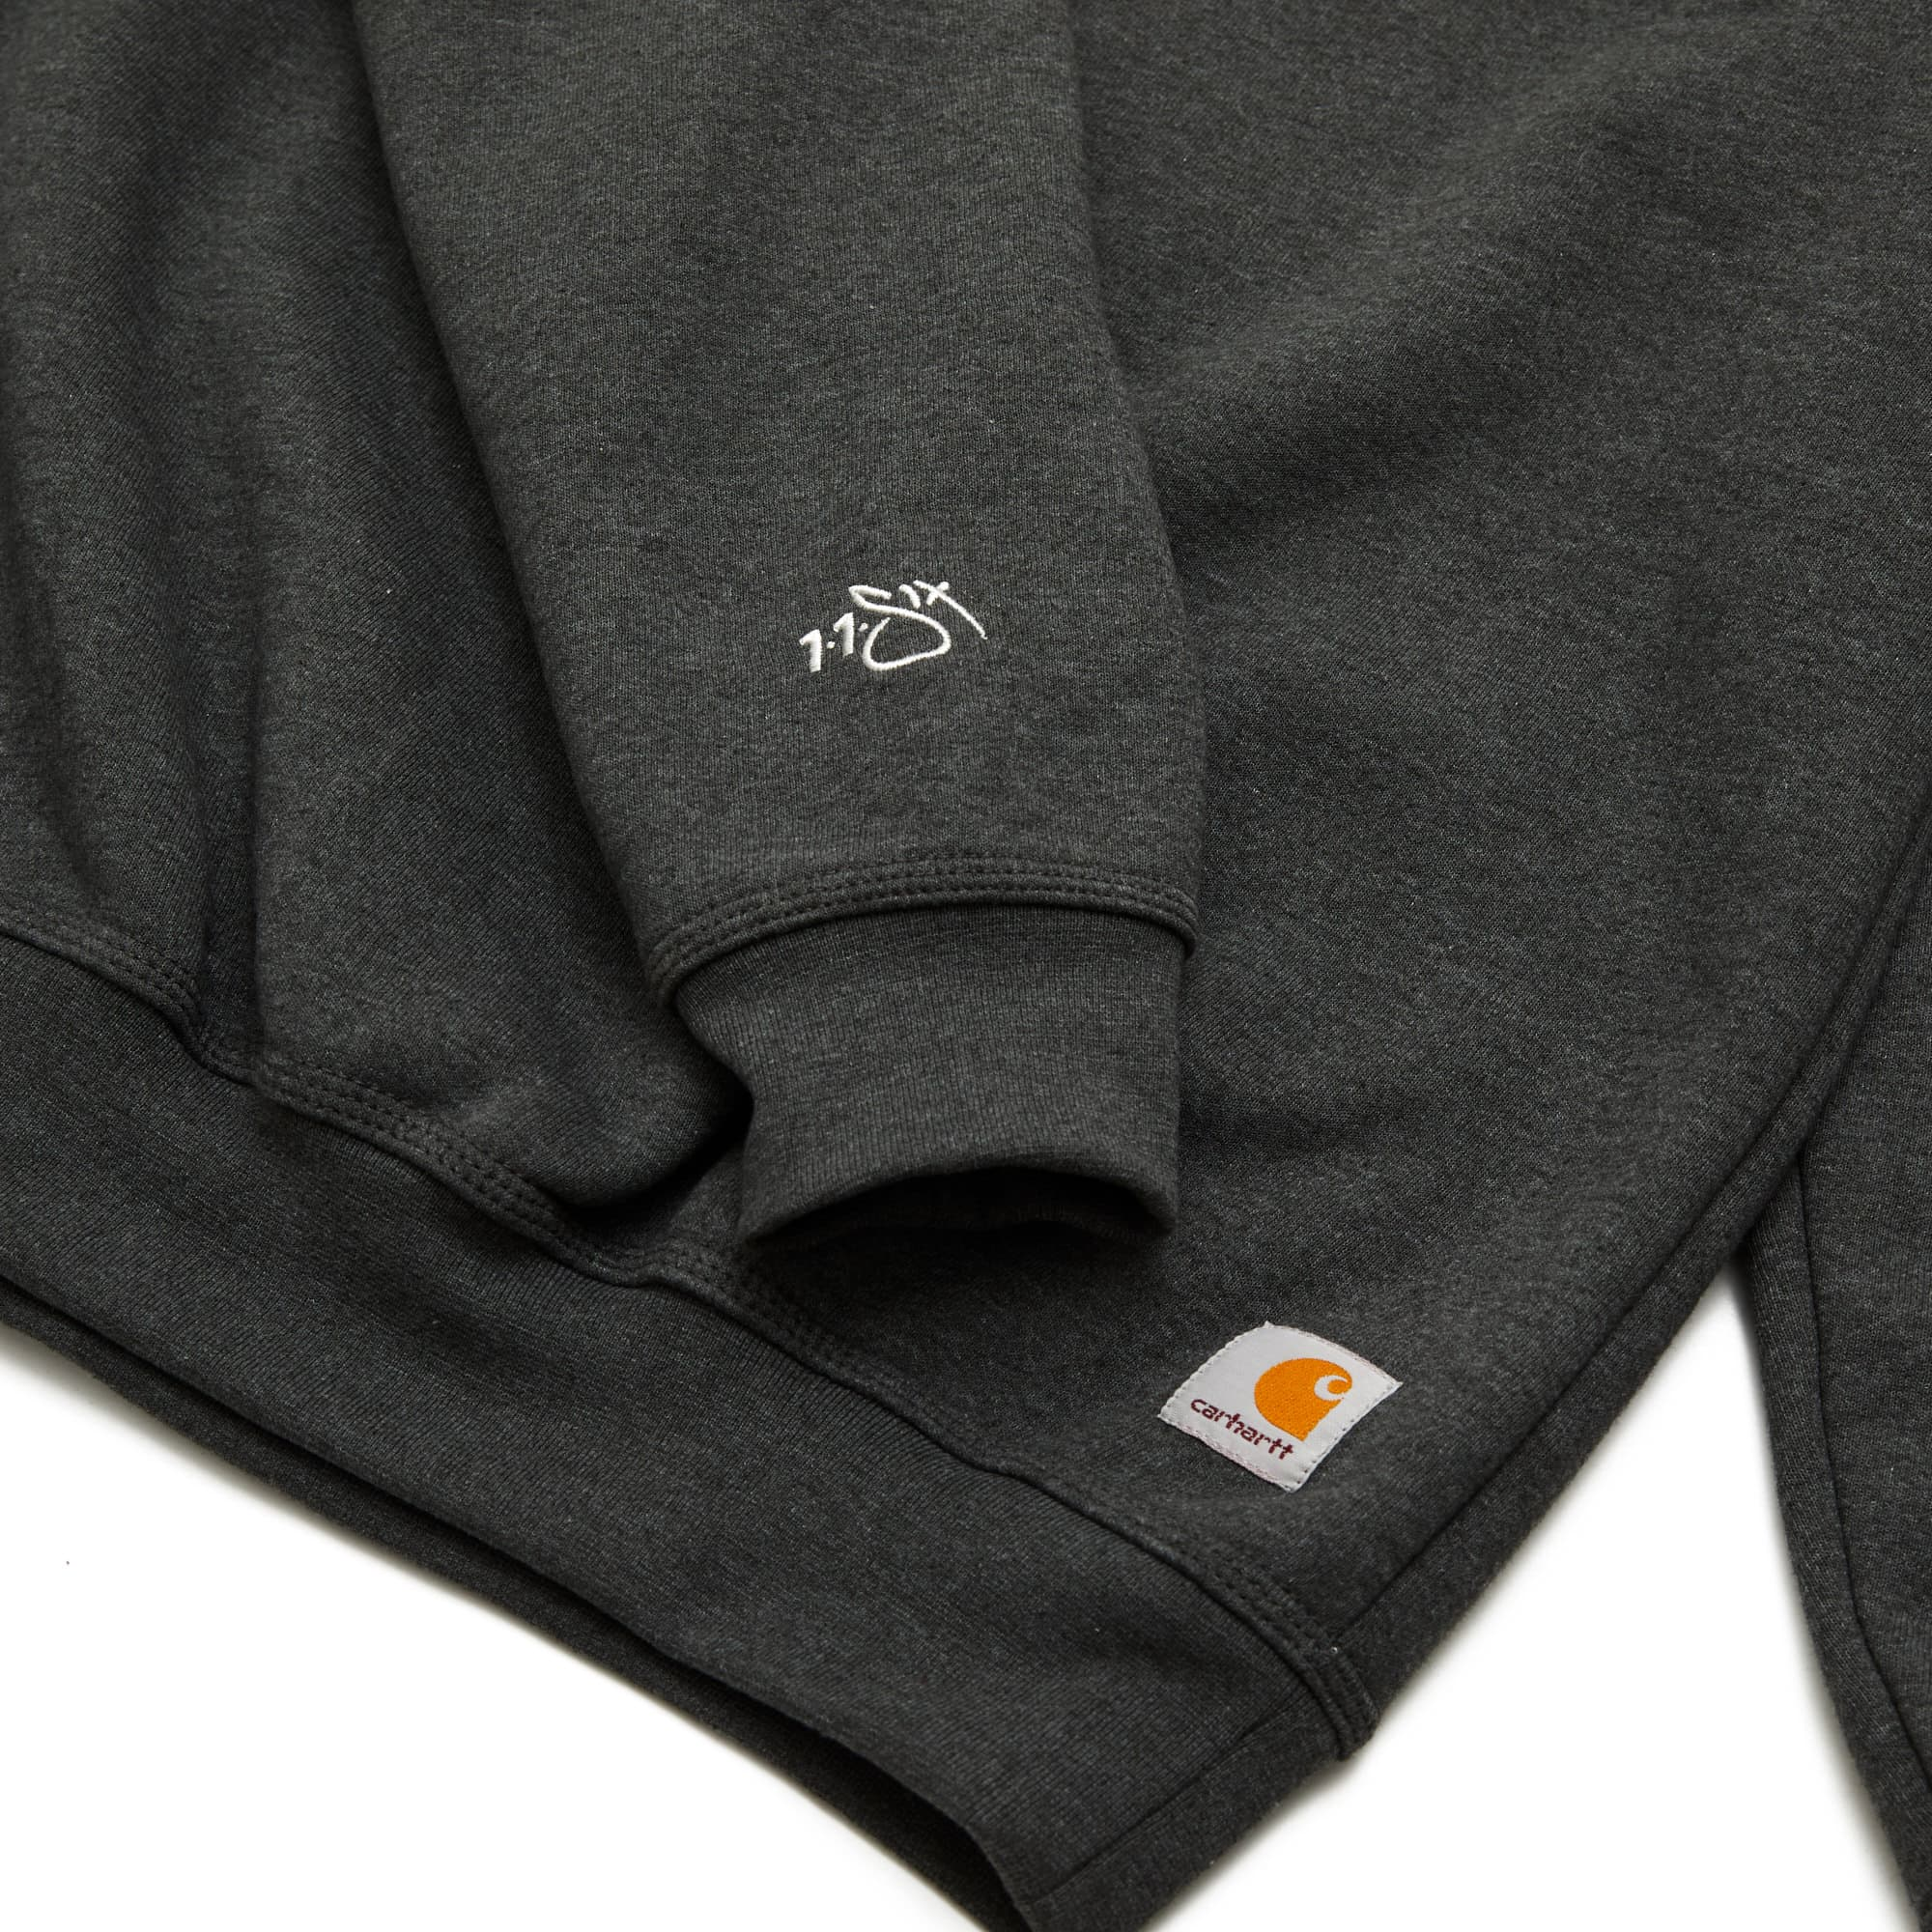 116 x Carhartt 'Not For Human Masters' Crewneck Sweater